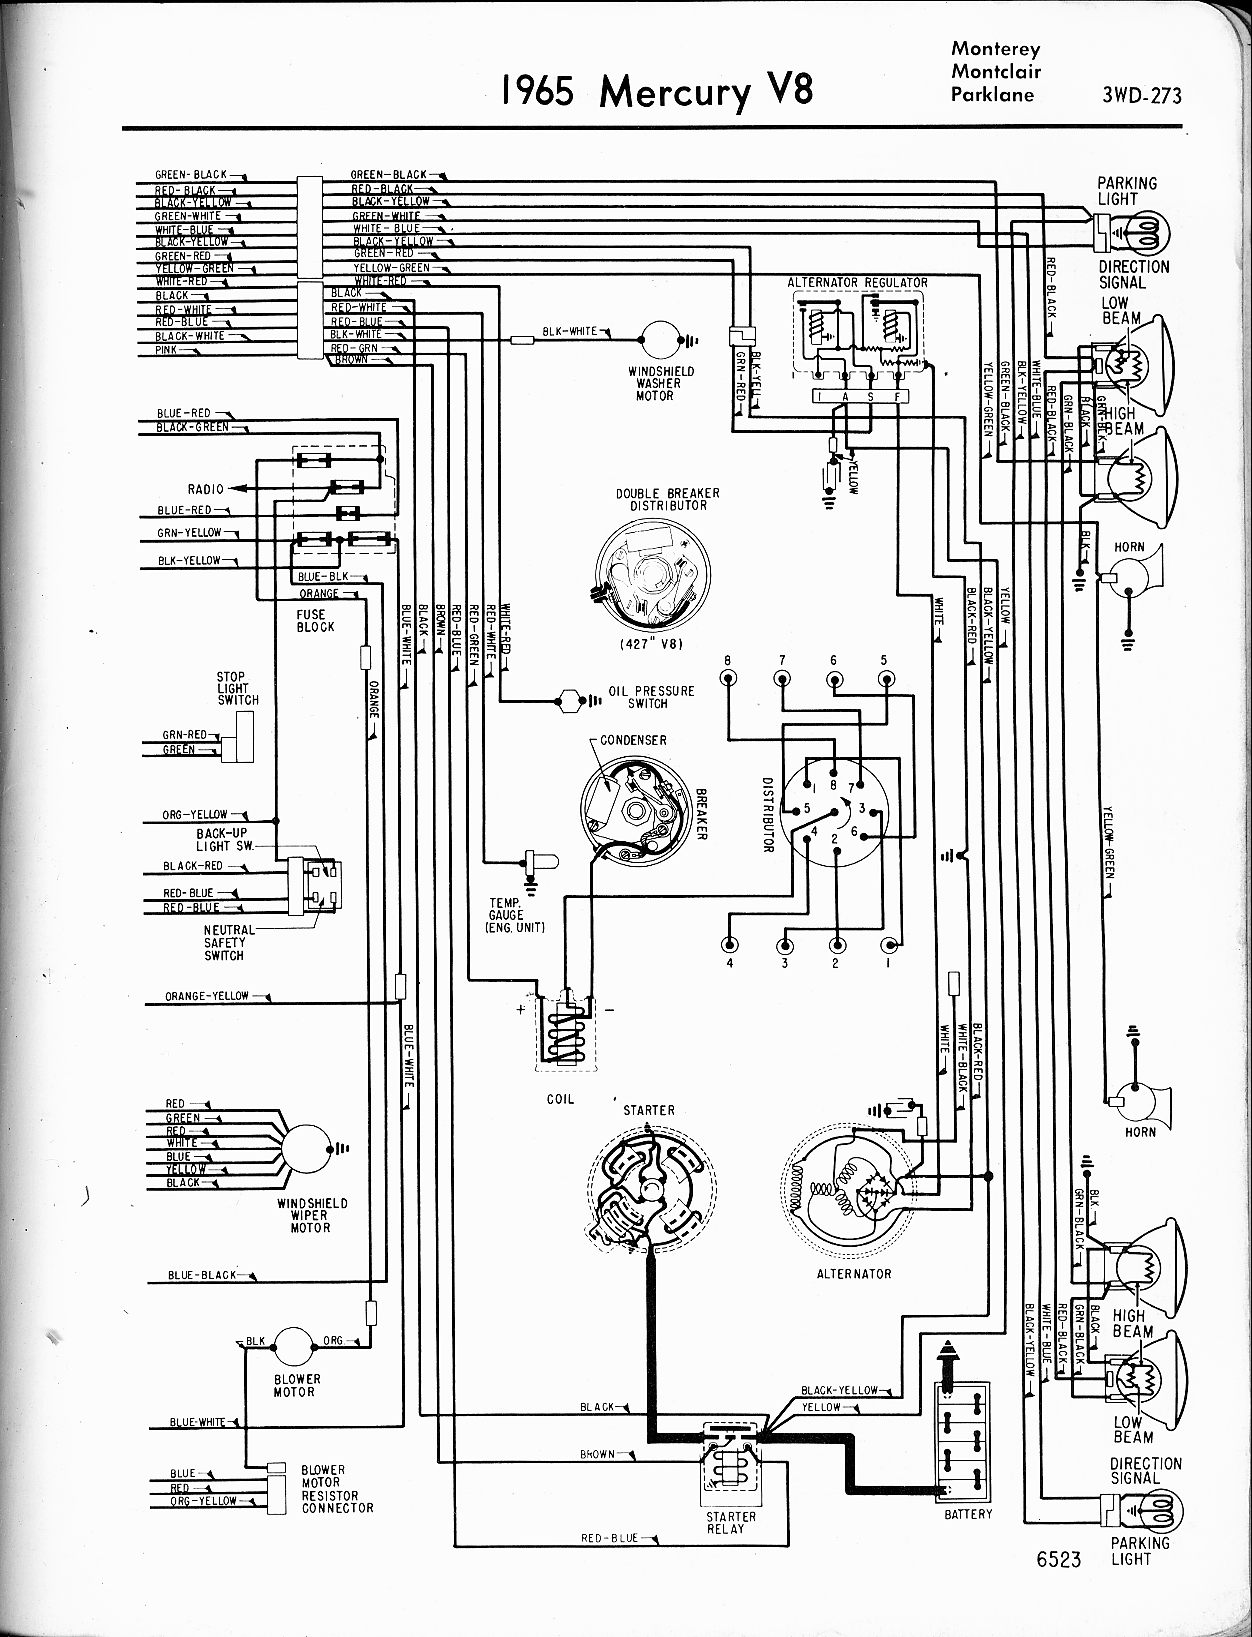 1967 firebird ignition switch wiring diagram with 73 Nova Starting System Wiring Diagram on 1972 Cj5 Fuel Tank Wiring Diagrams besides 67 Ford Mustang Wiring Diagram additionally 1969 Firebird Wiring Diagram also Automotive Charging System Wiring Diagram moreover 1967 Camaro Painless Wiring Harness Diagram.